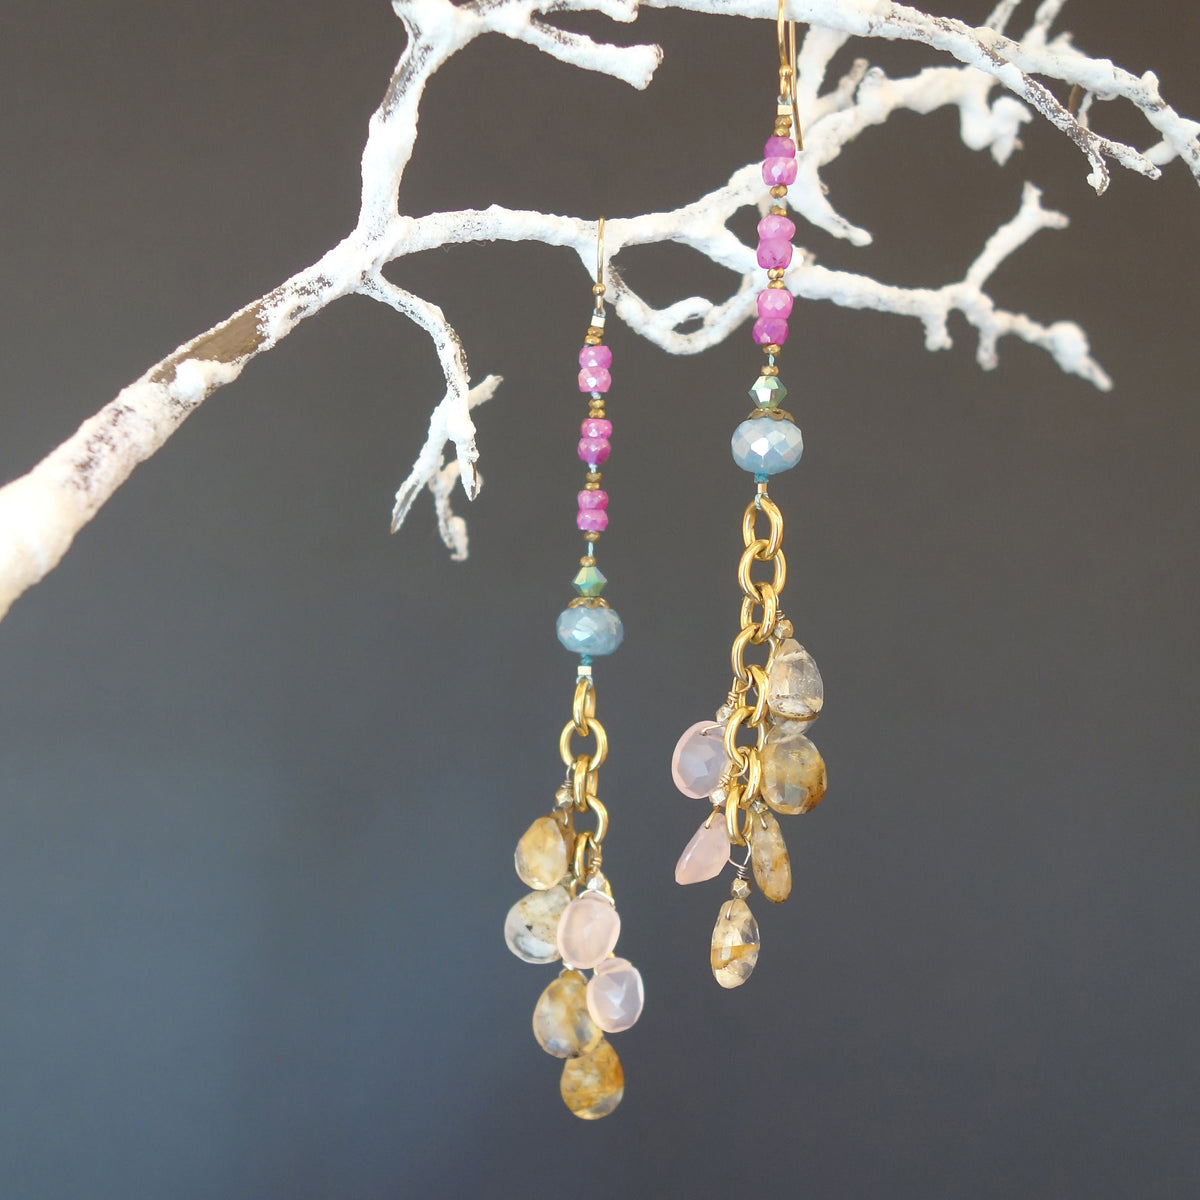 Glamorous Gold, Pink Sapphire, and Rose Quartz earrings